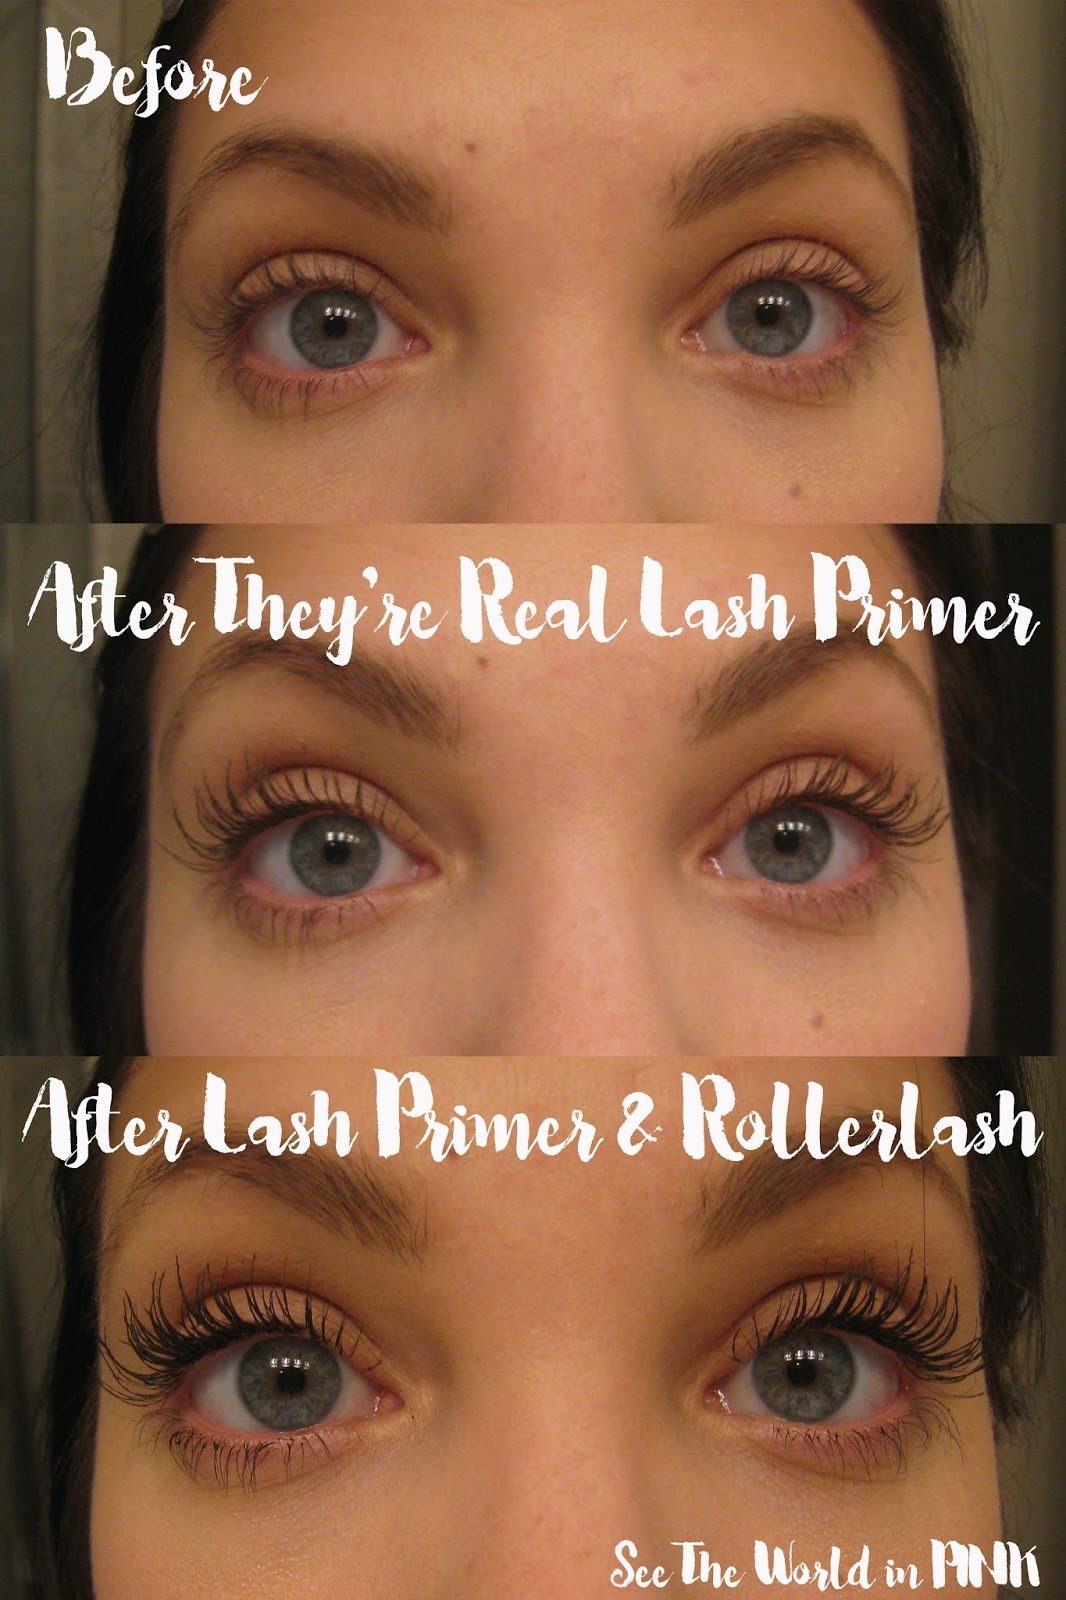 Makeup Product Review - NEW Benefit Cosmetics They're Real! Tinted Lash Primer